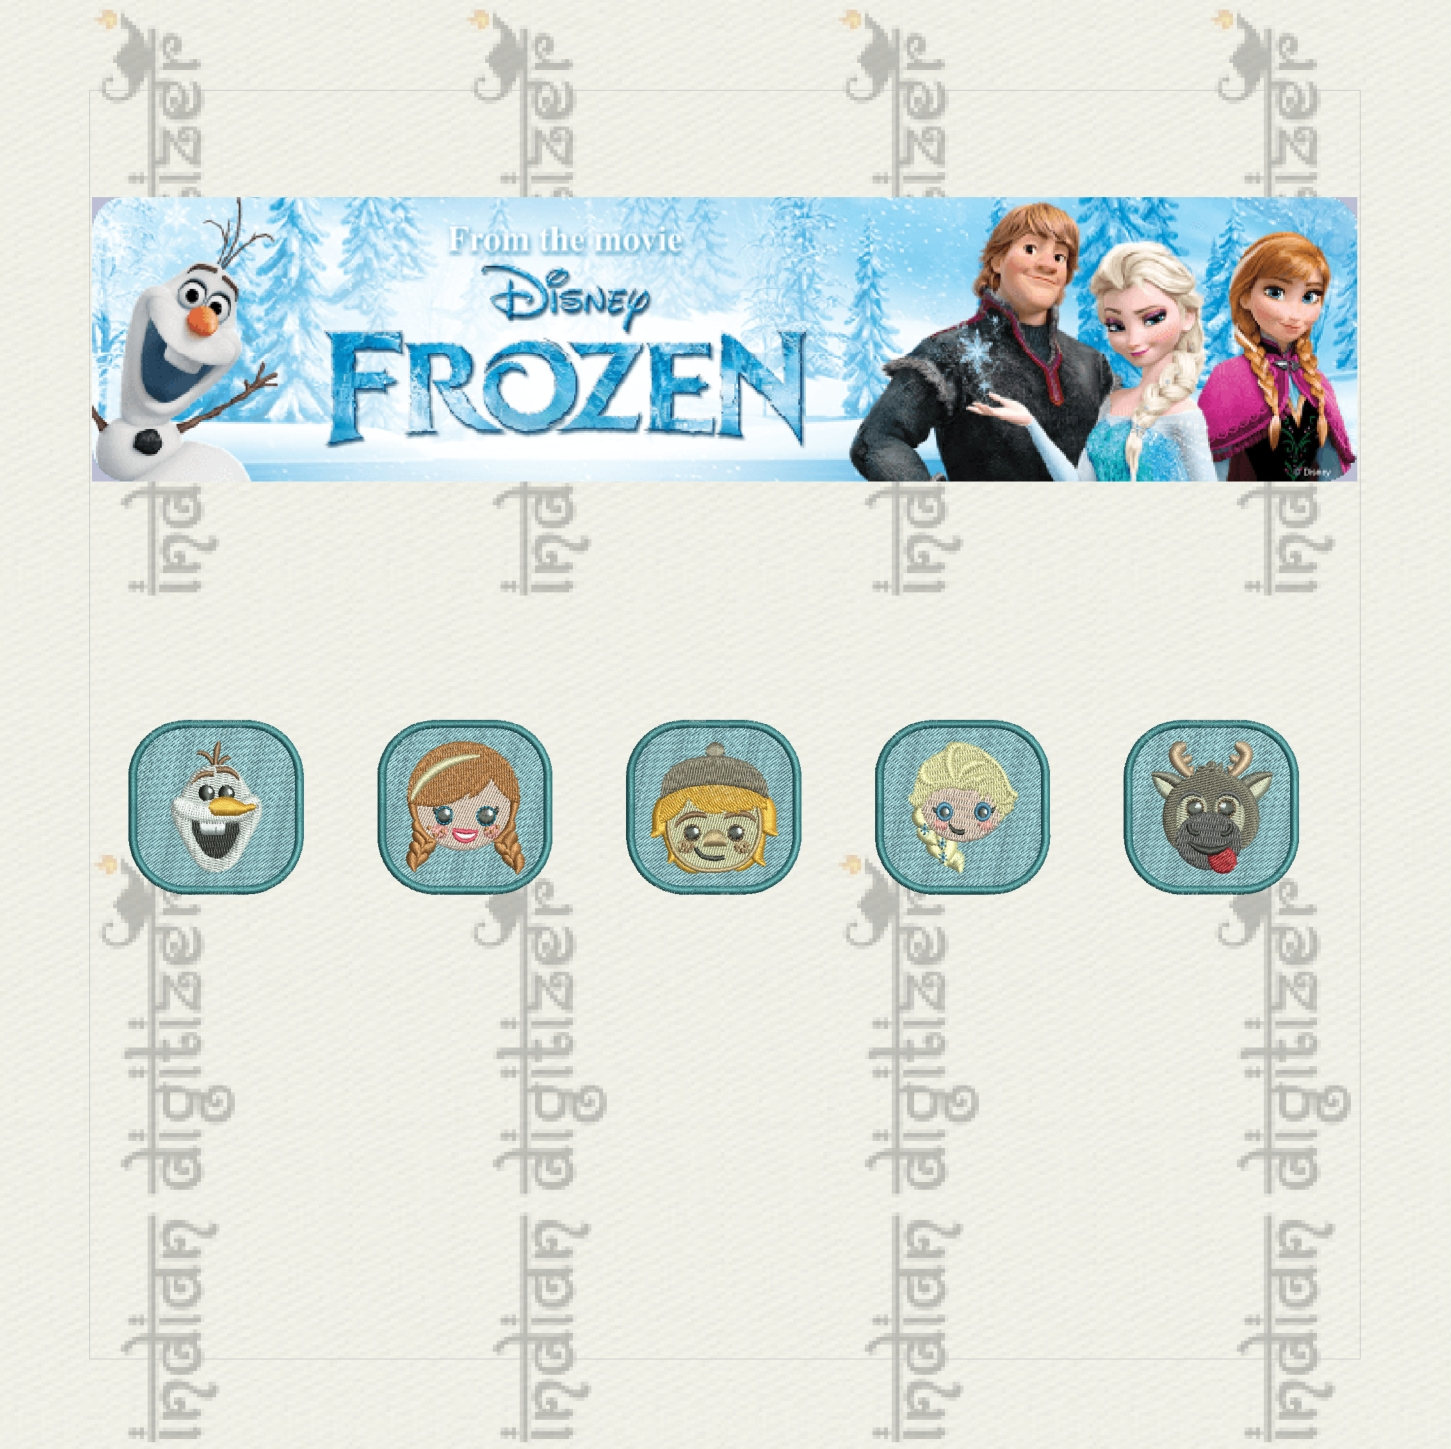 50% off on Frozen Emojis machine embroidery designs for 4in hoop - 5 resizable designs for badges, key fobs, tshirts, hats, towels, bibs.